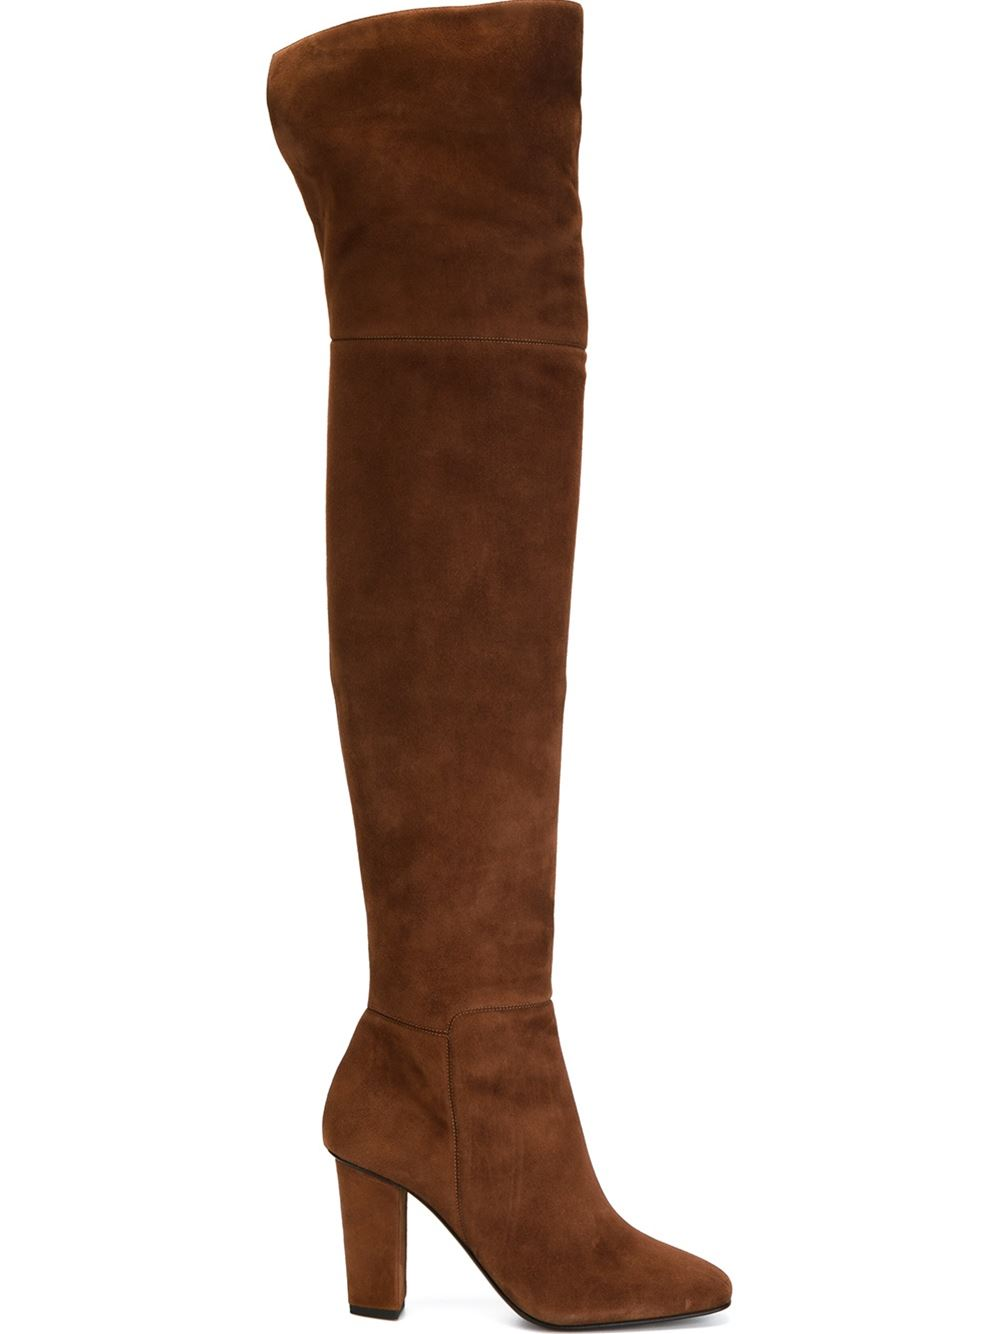 Brown leather and suede over the knee-length boots from Giuseppe Zanotti Design